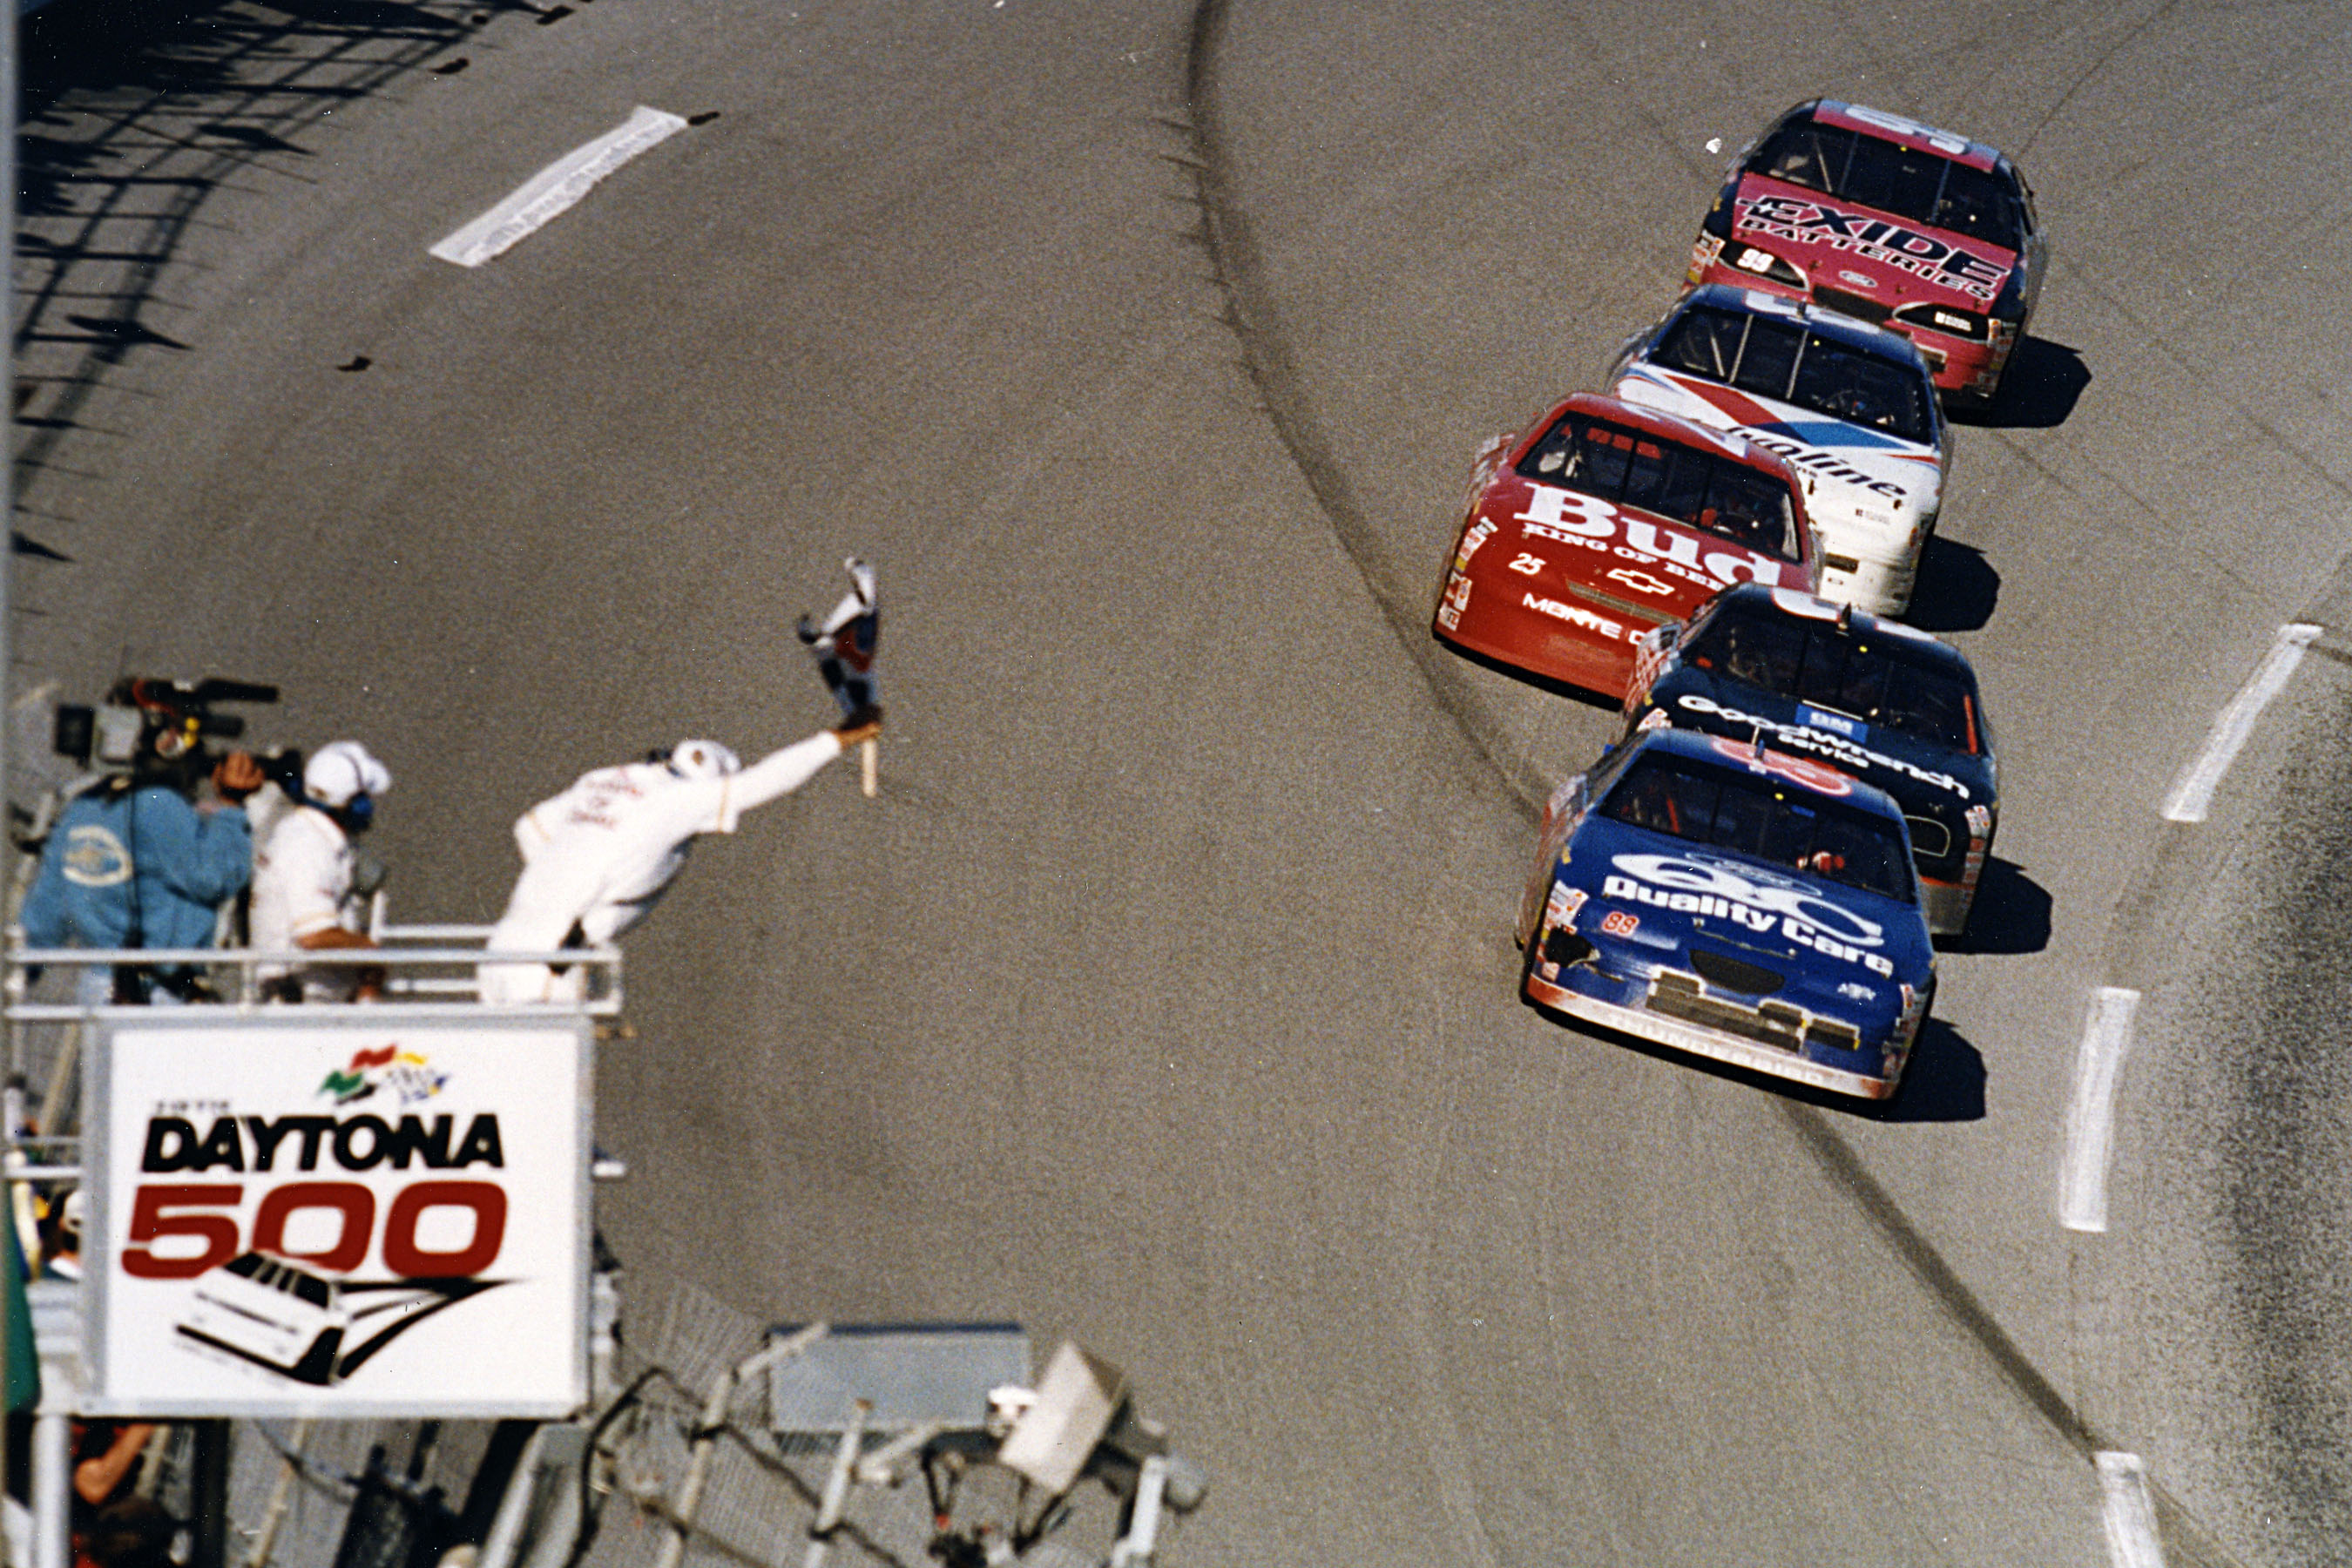 1996 Daytona 500 - Checkered Flag